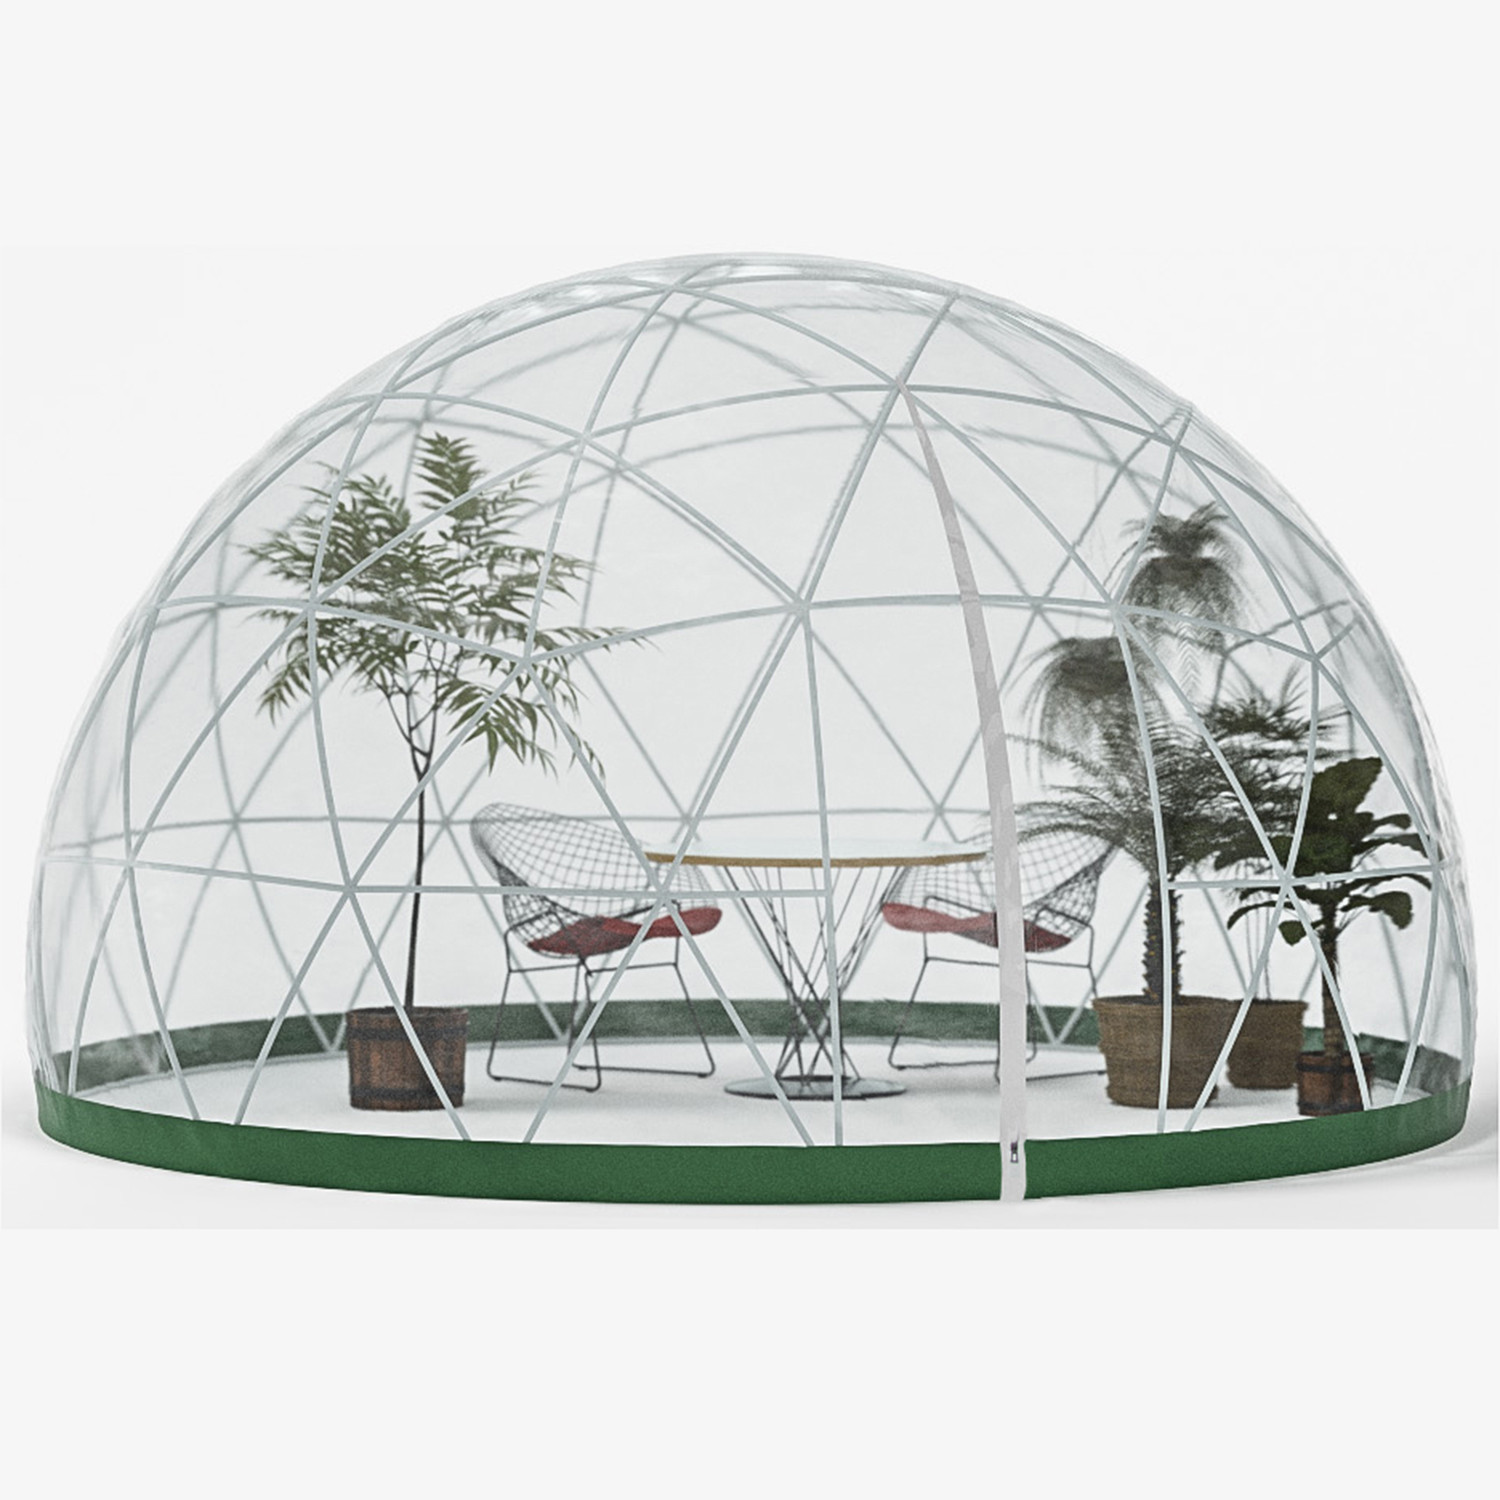 Igloo Da Giardino Garden Igloo Garden Igloo Touch Of Modern